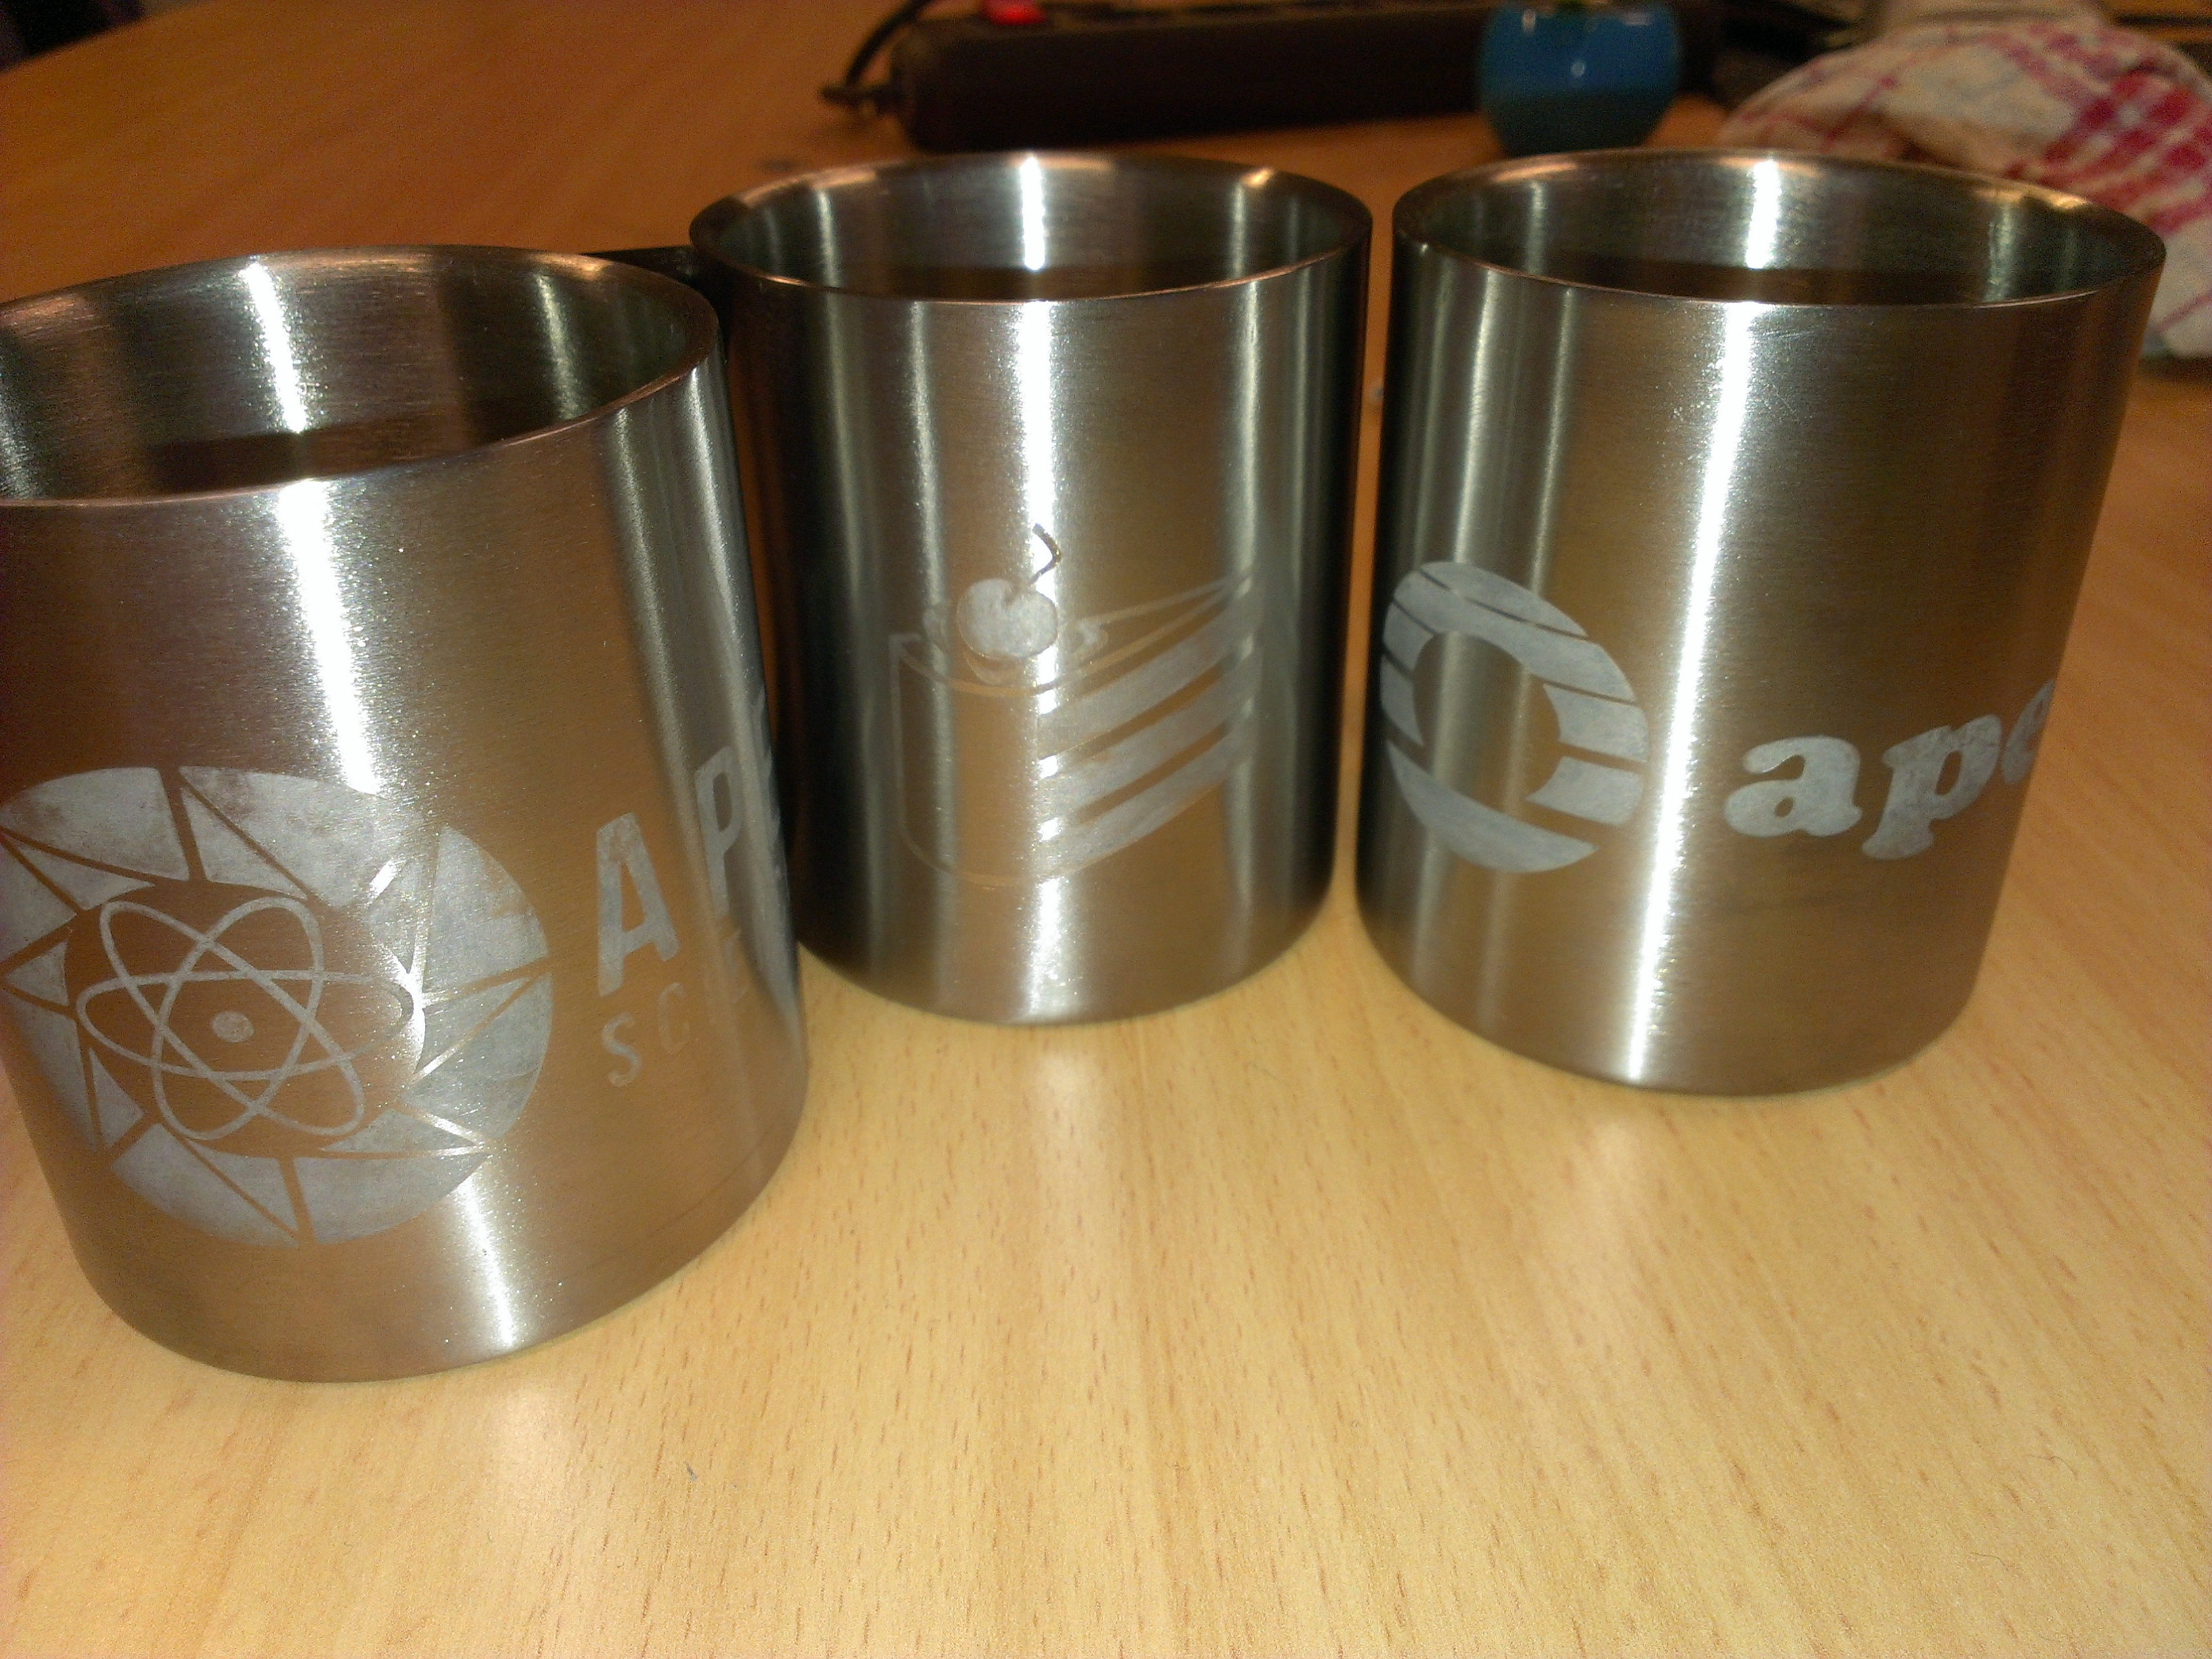 Top How-To: Stainless Steel Etching (2 Updates) - Stratum 0 UA63